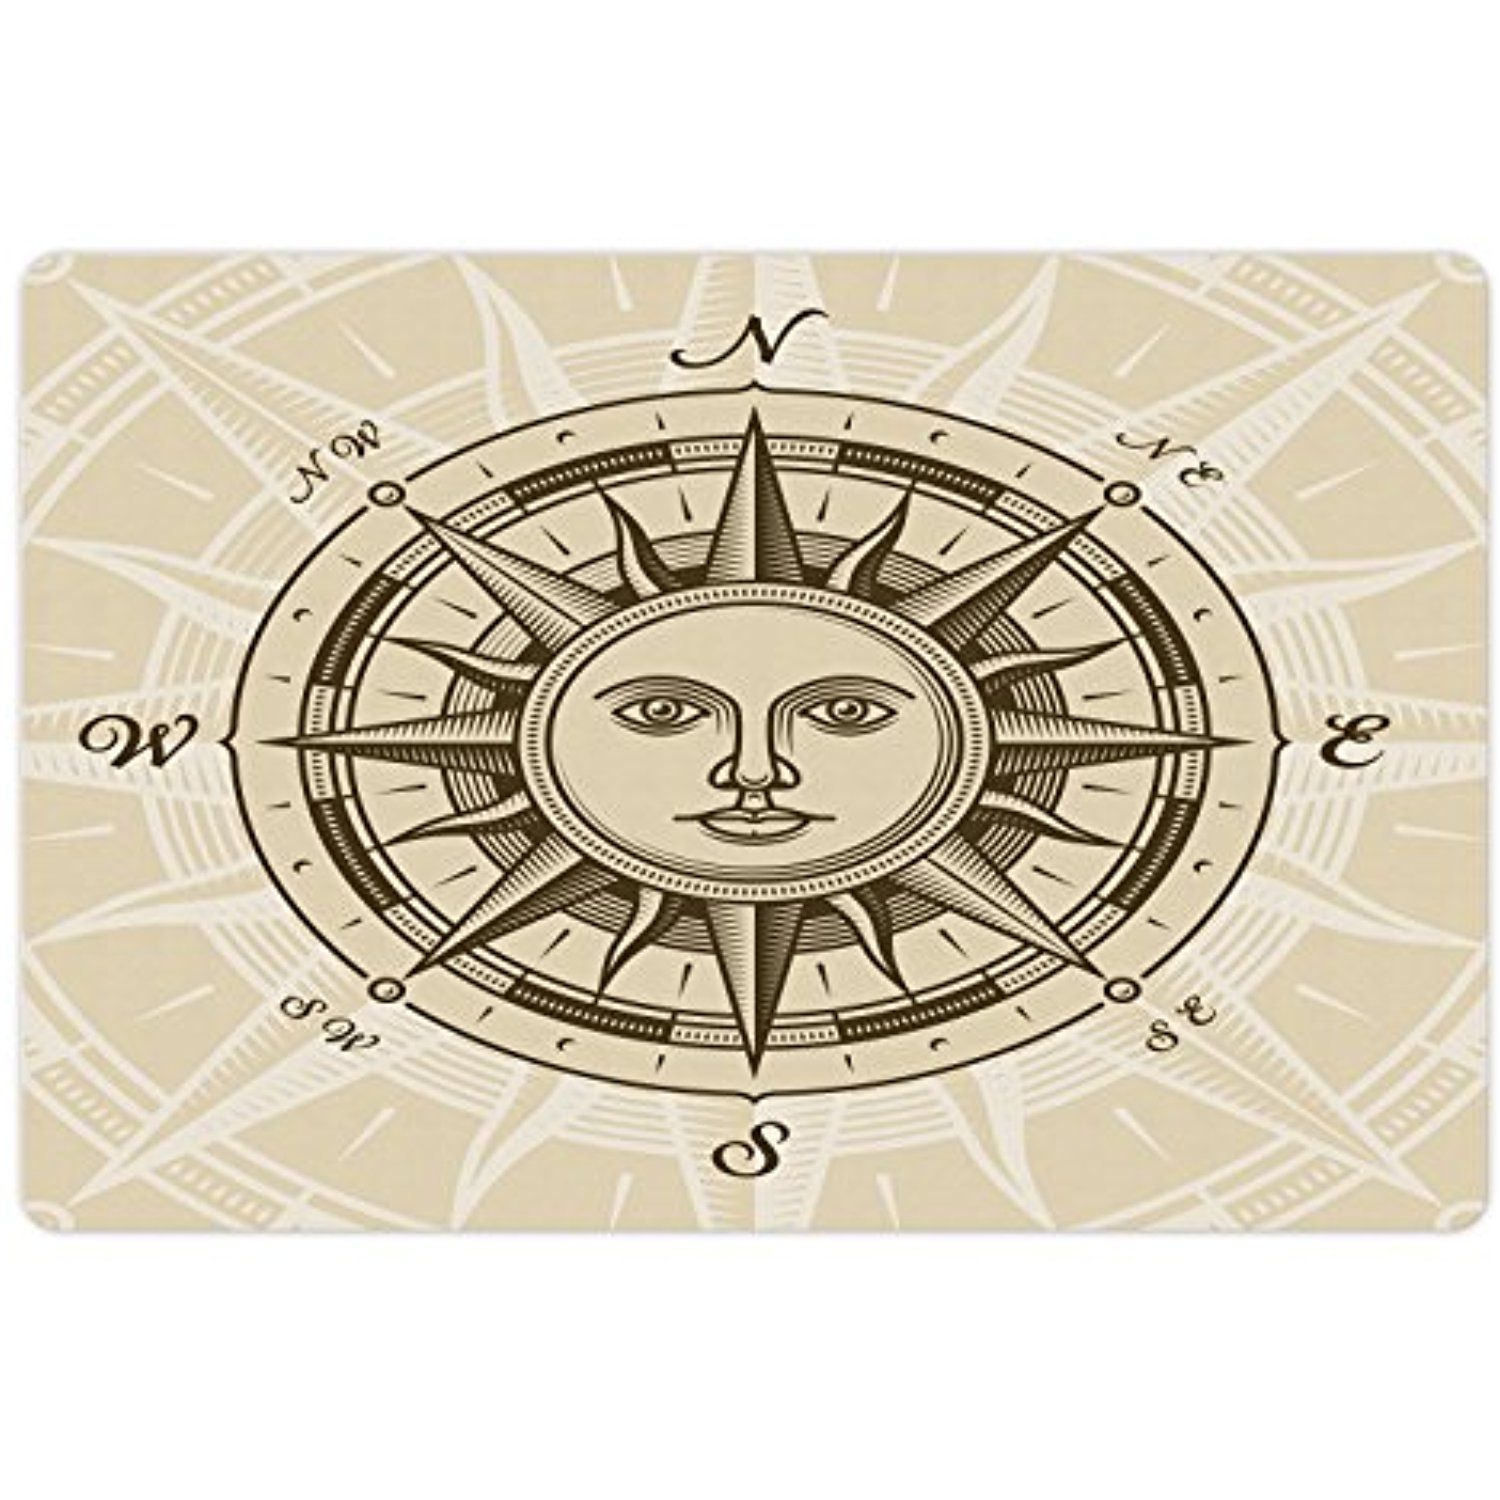 Compass Pet Mats For Food And Water By Lunarable Vintage Rose With Sun Shape Human Face Historical Design Illustration Rectangle Non Slip Rubber